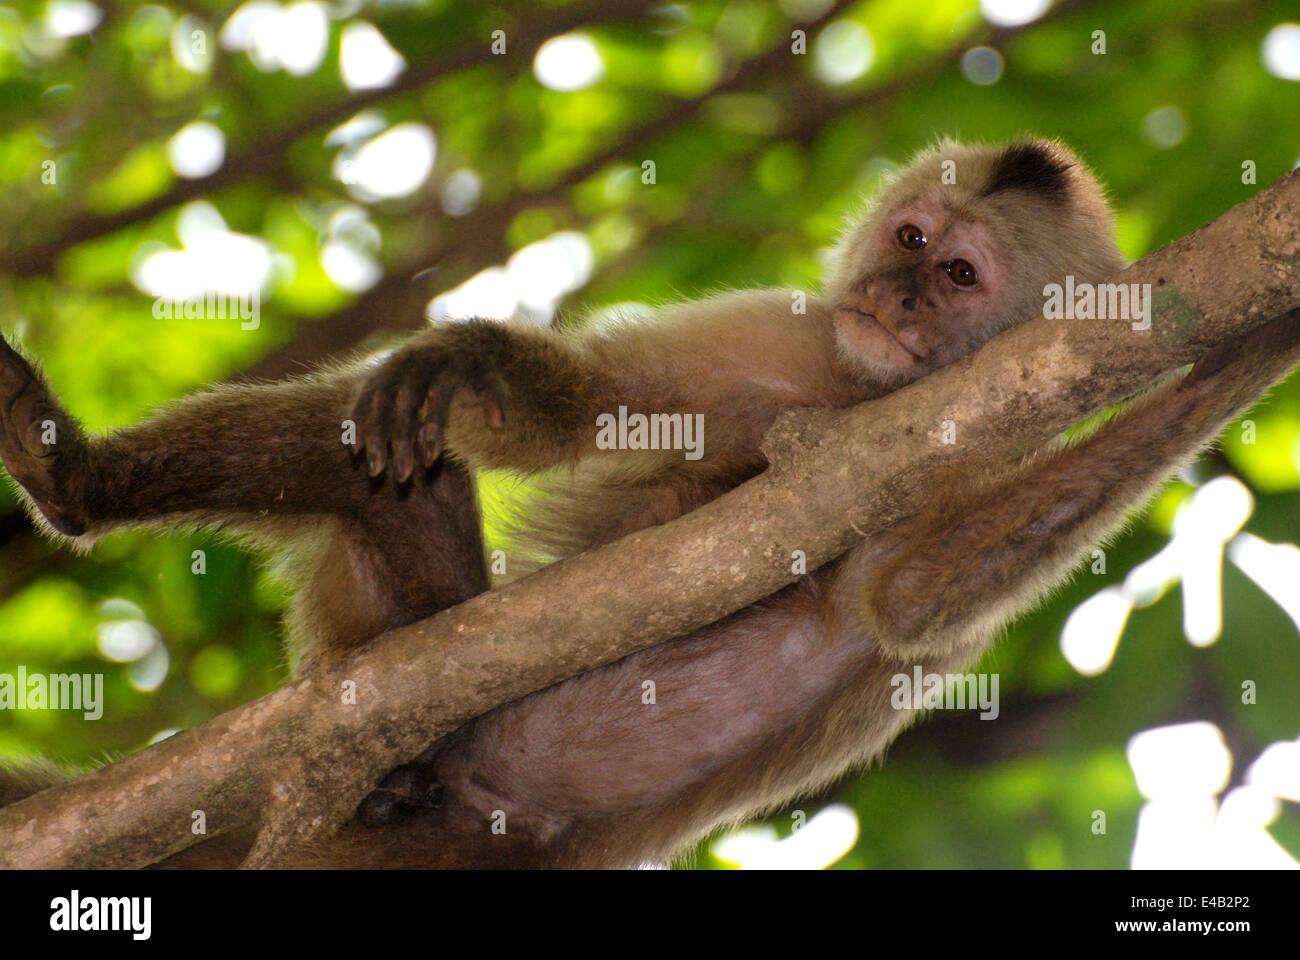 Brown Capuchins: Lifestyles, Behaviors and Descriptions of Monkey Species 95